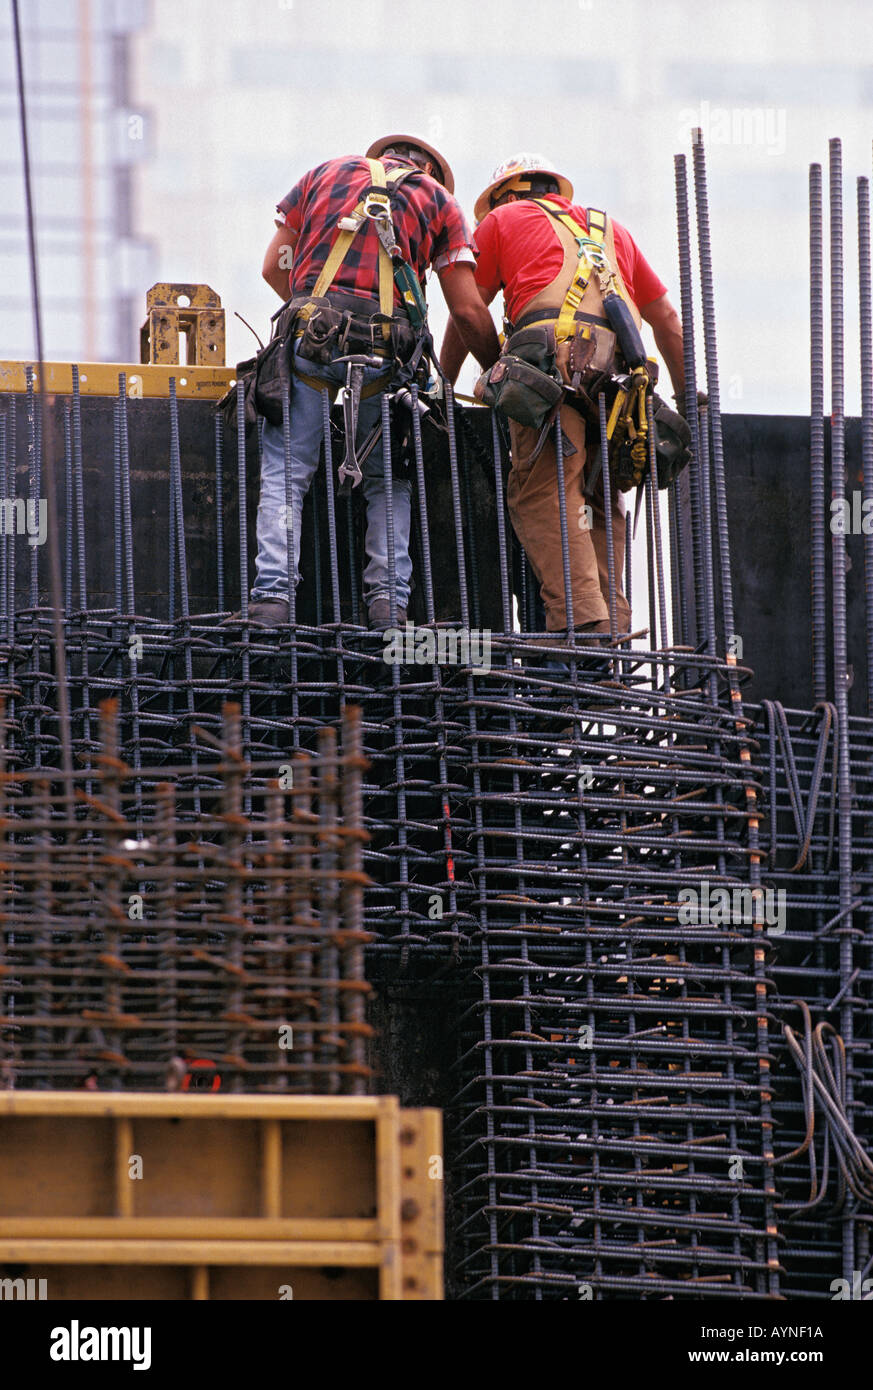 Safety Harnesses Stock Photos & Safety Harnesses Stock